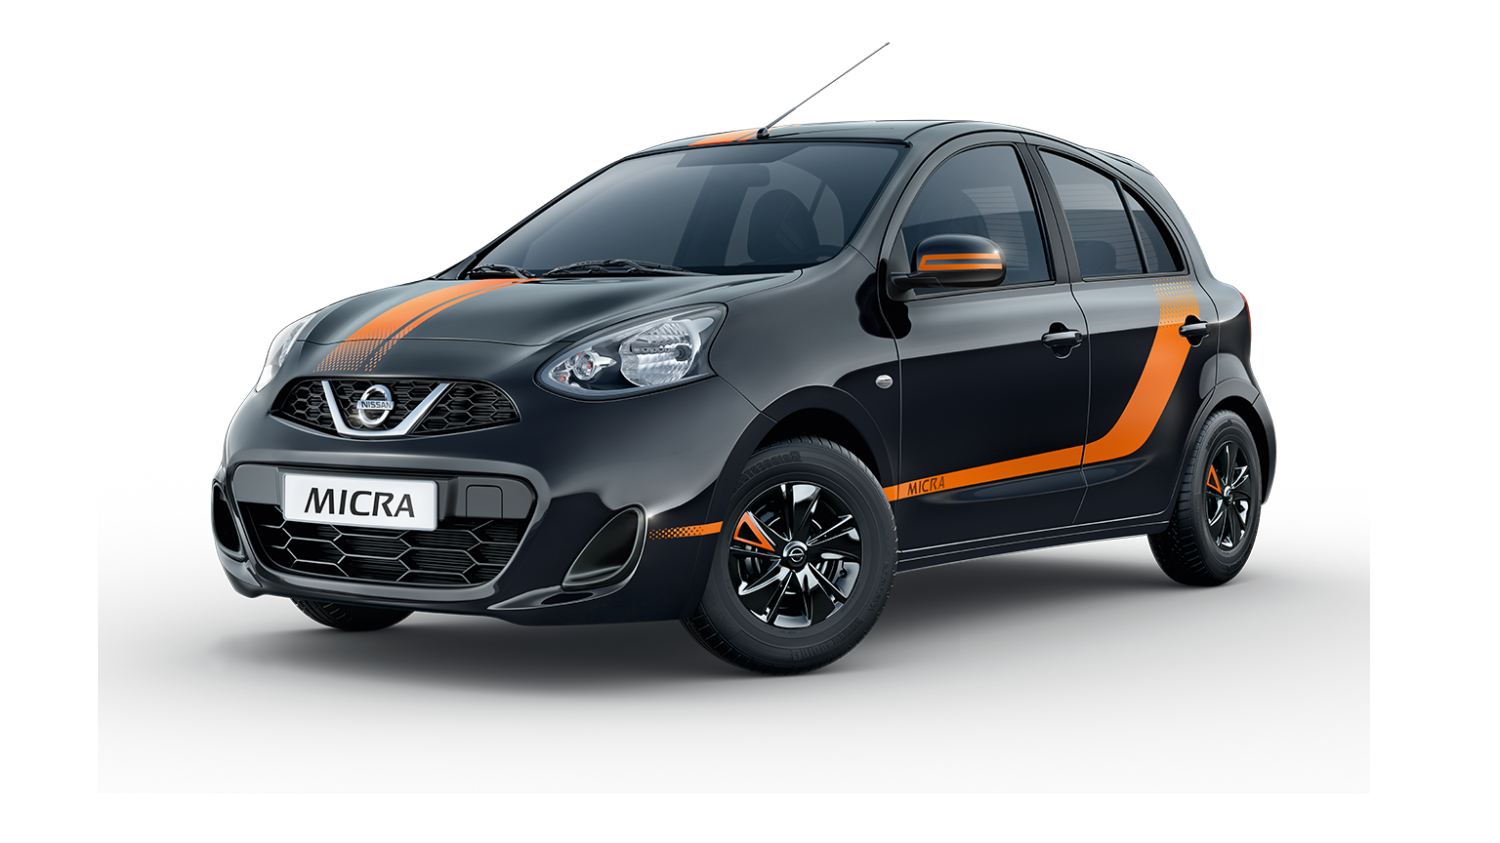 Nissan micra photos india Nissan Micra Price in India Nissan Micra Reviews, Photos Videos